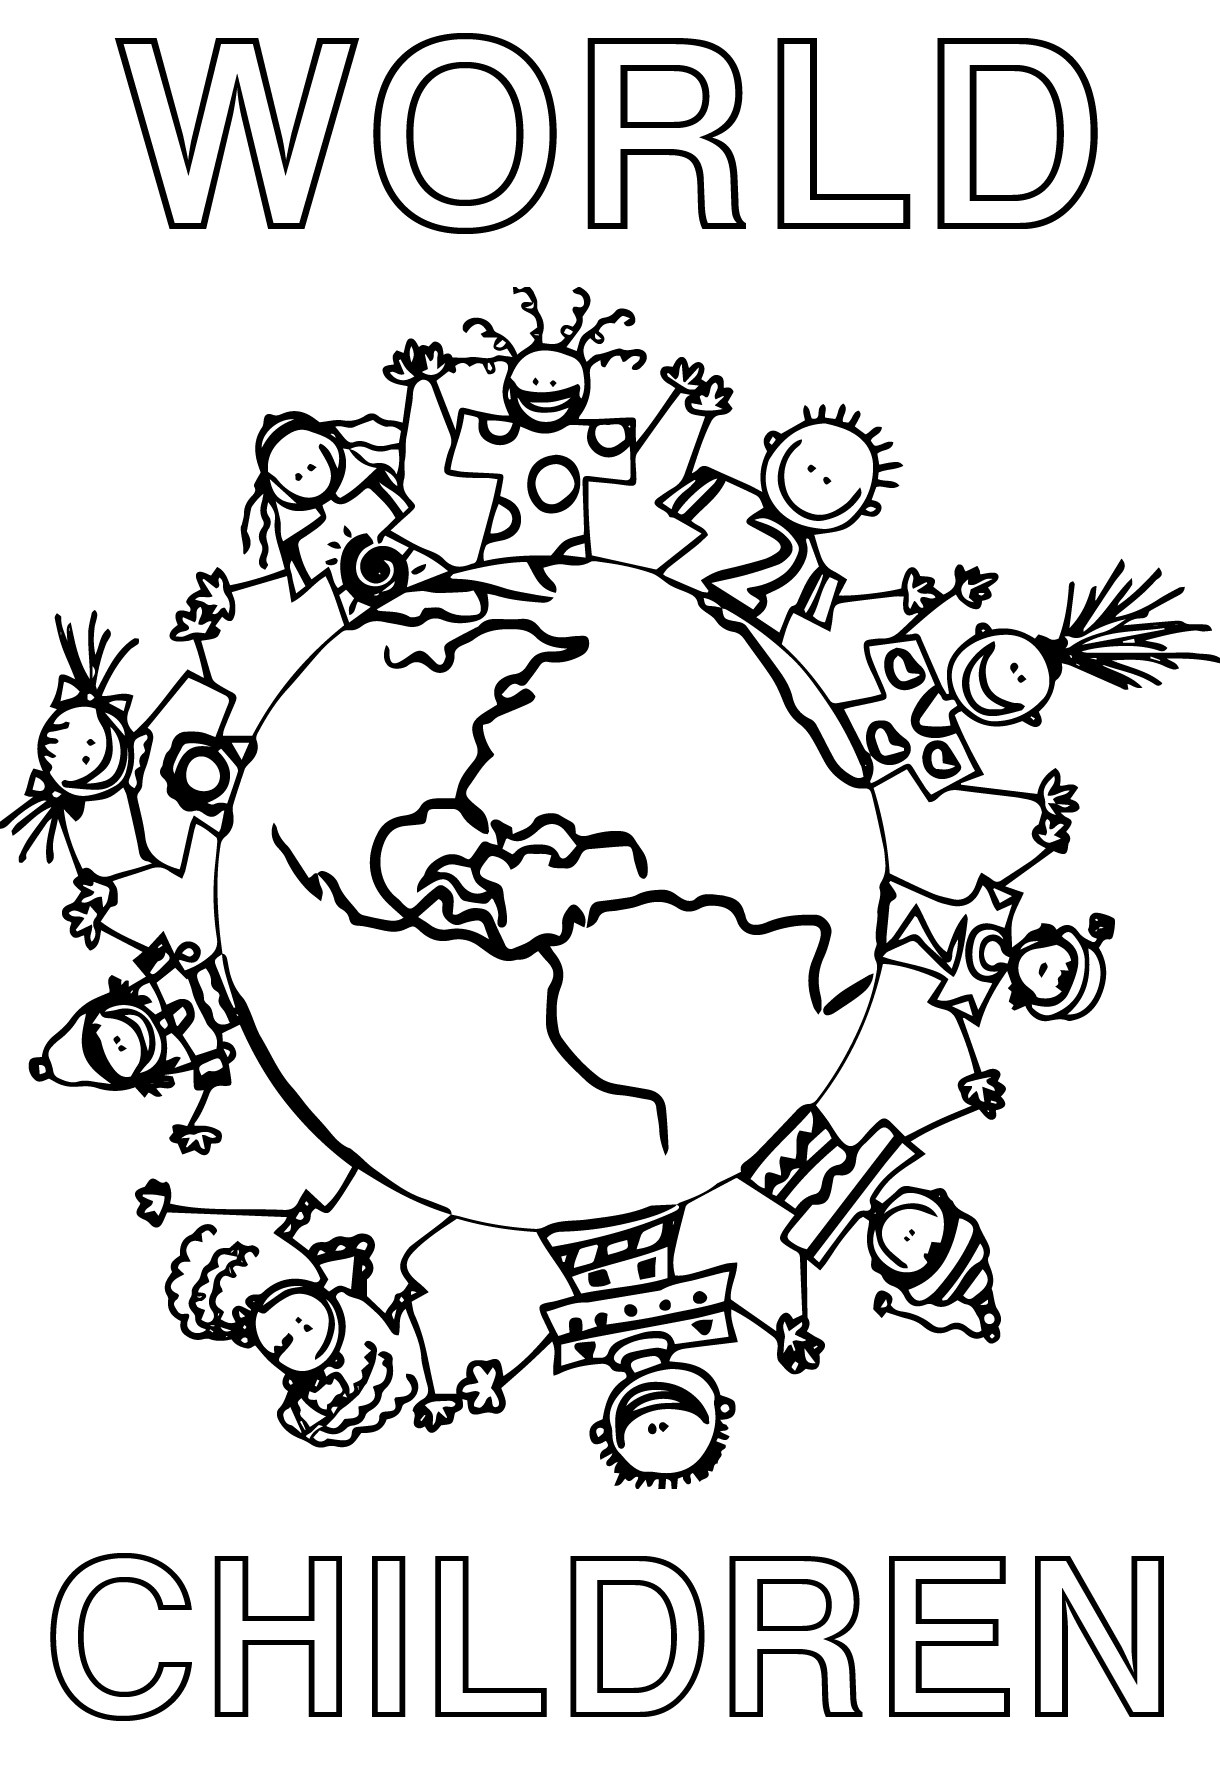 Flags Of The World Printable Coloring Pages At Getdrawings